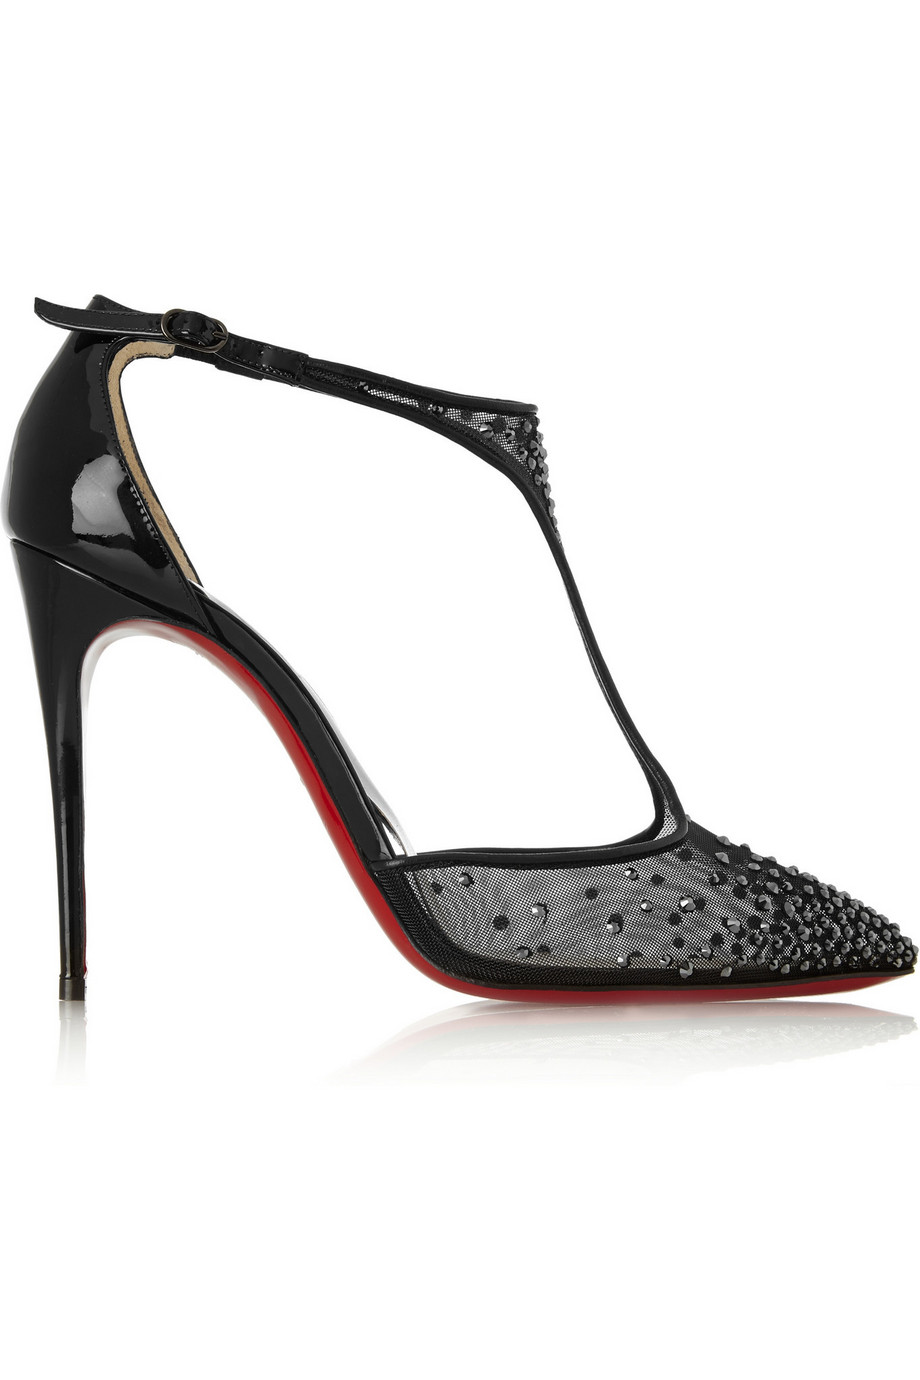 Christian Louboutin Salopatina 100 Patent Leather-Trimmed Embellished Mesh Pumps, Black, Women's US Size: 7.5, Size: 38